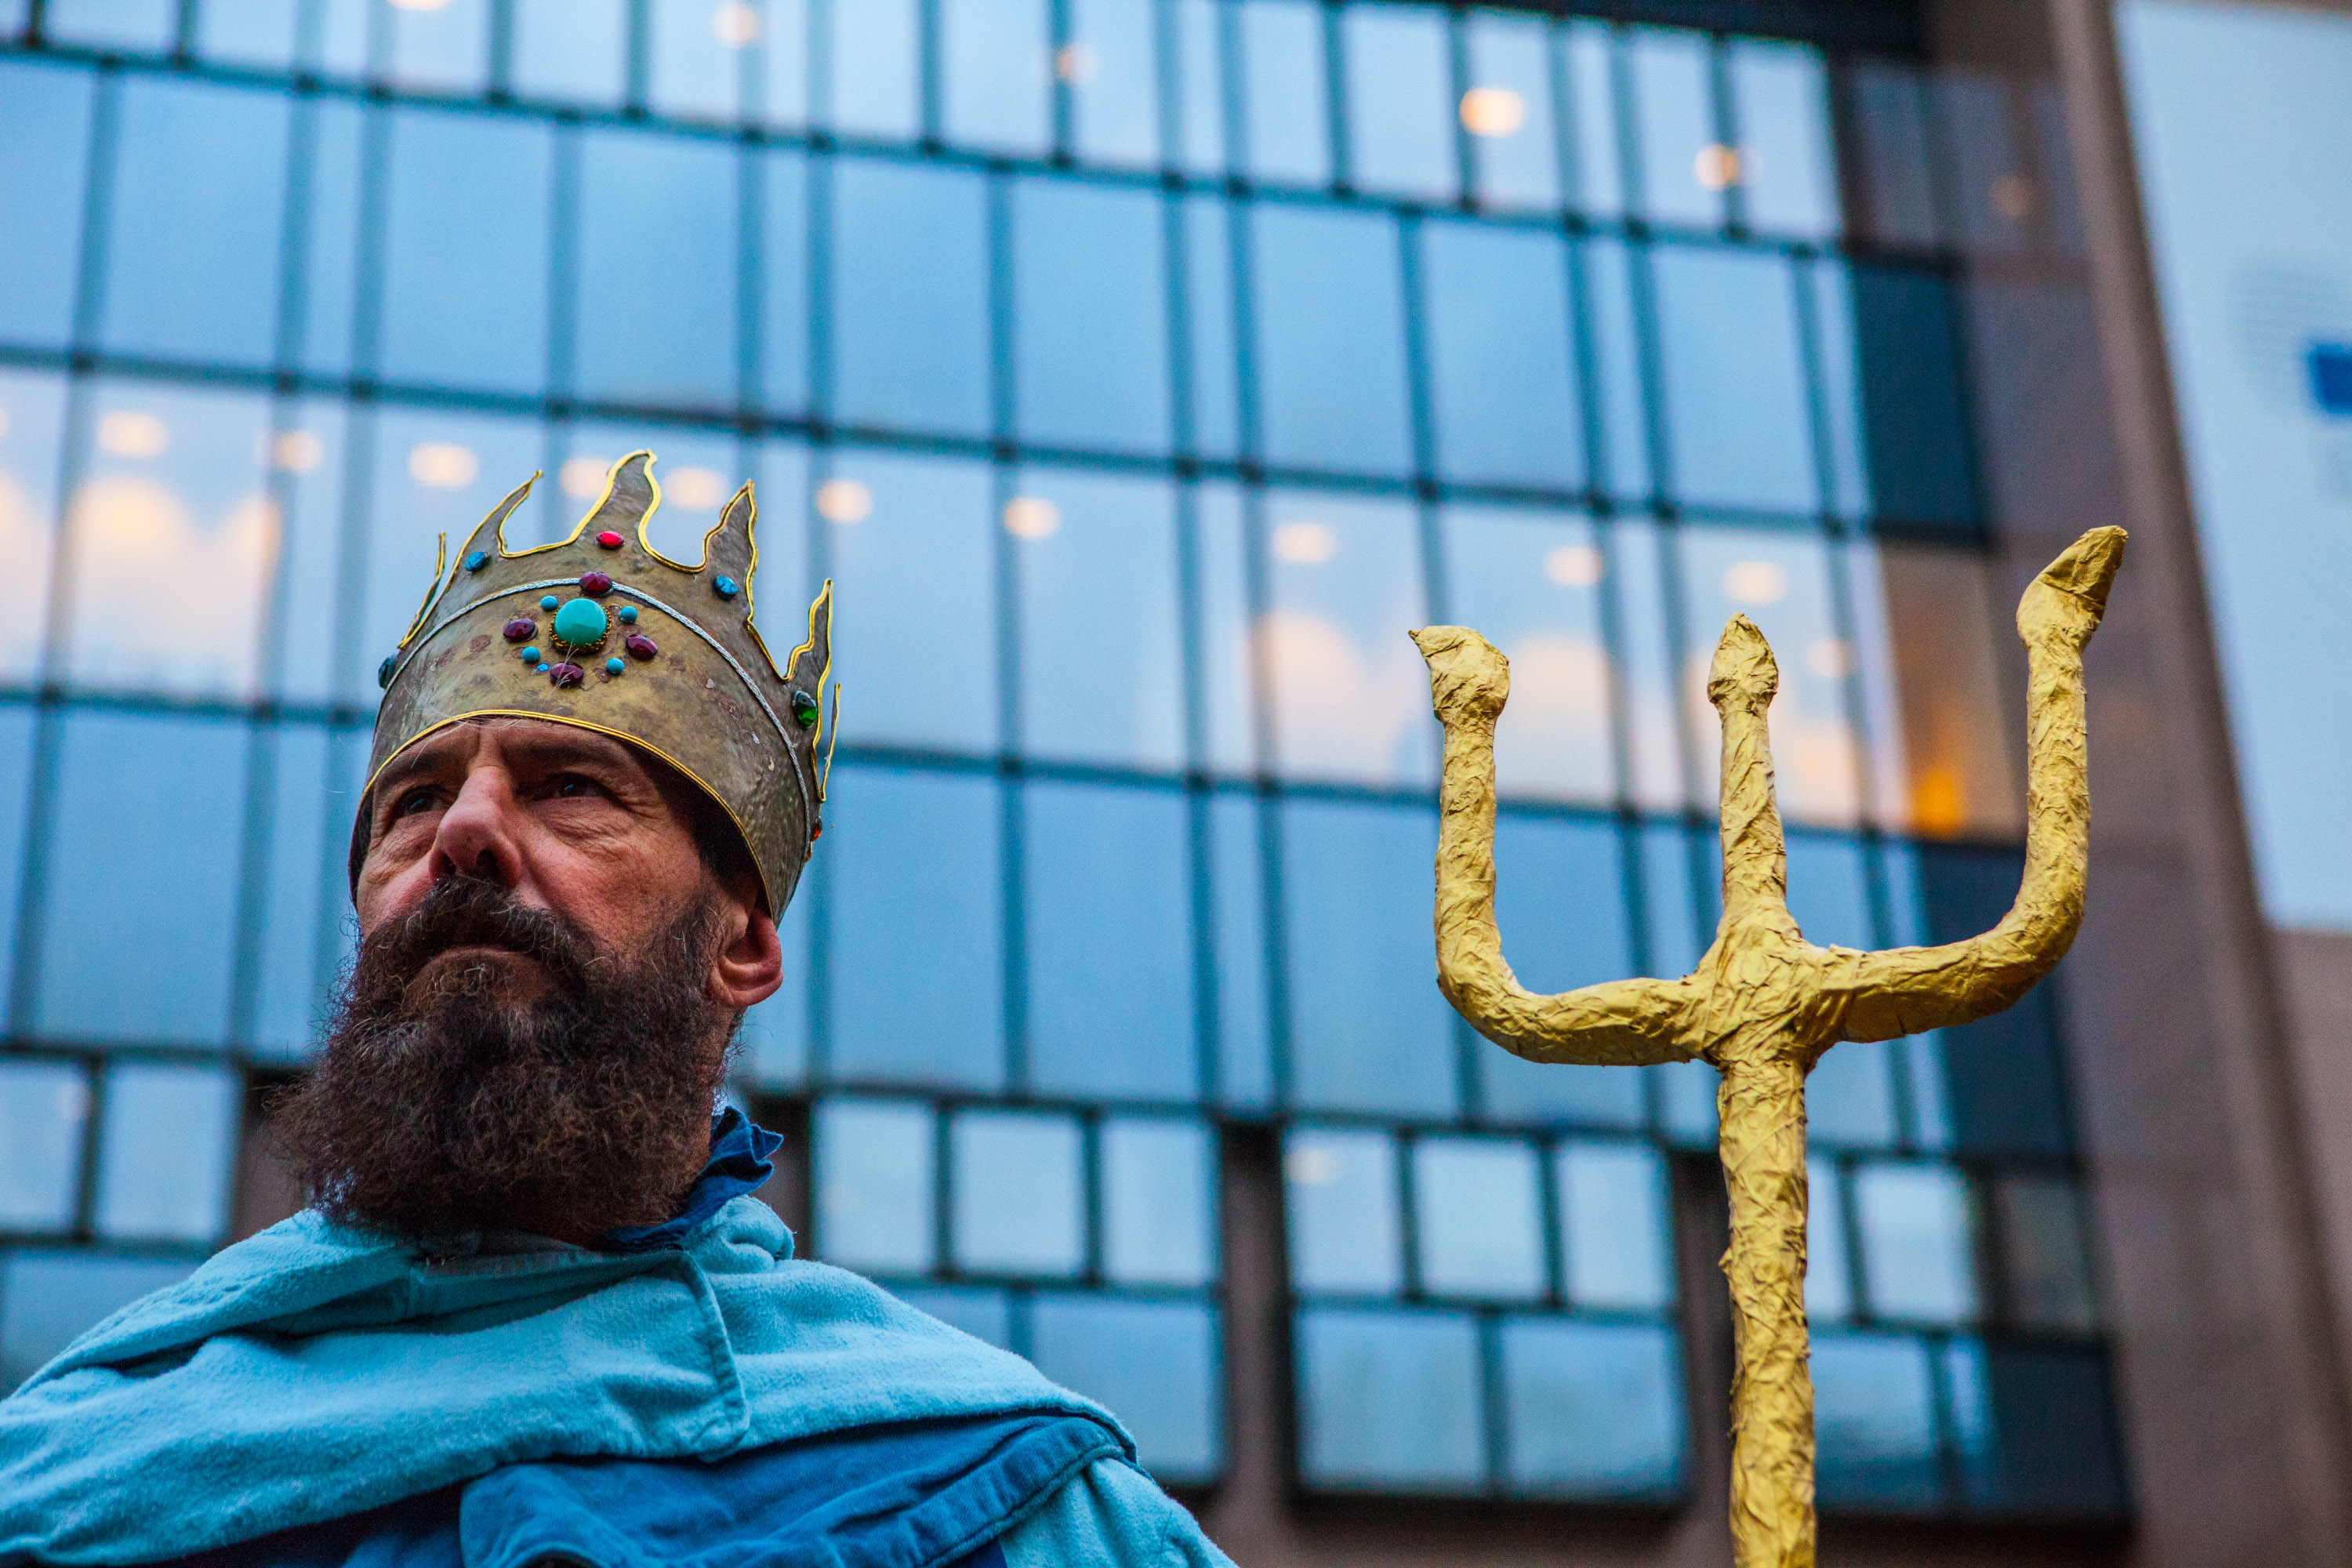 God of the sea, Poseidon, meets EU fisheries officials in Brussels.